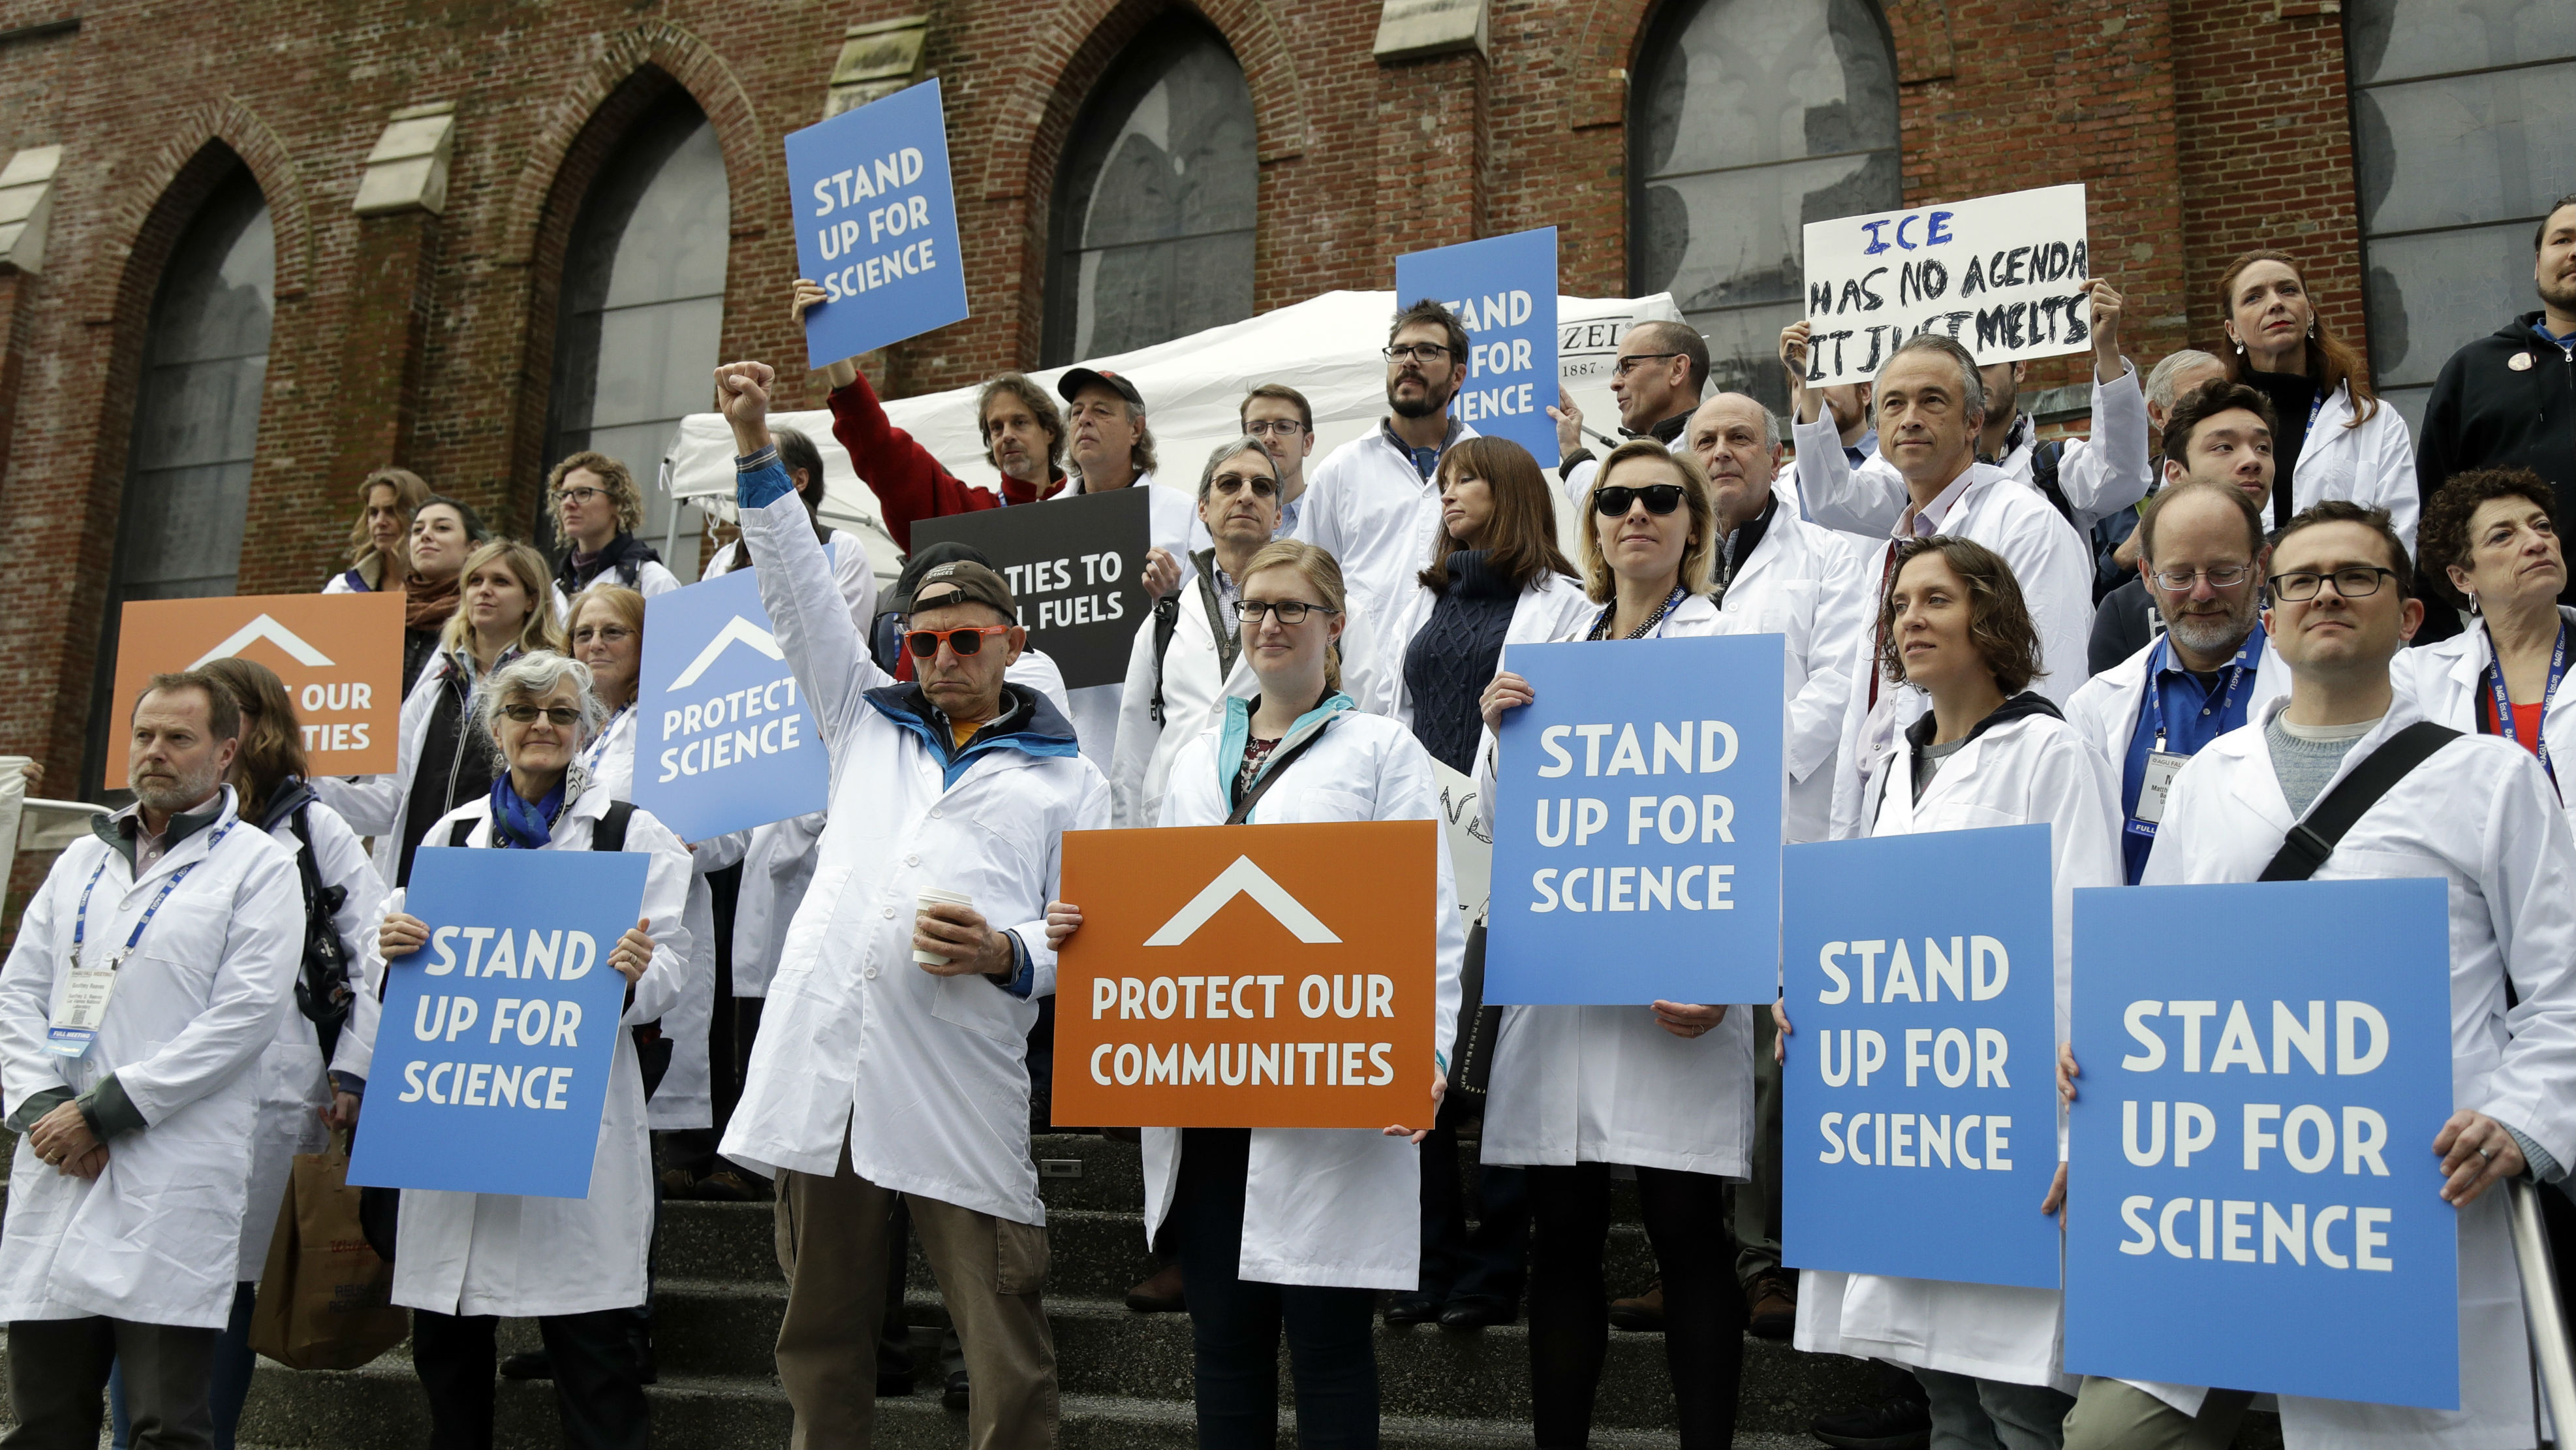 Scientists hold signs during a rally in conjunction with the American Geophysical Union's fall meeting Tuesday, Dec. 13, 2016, in San Francisco. The rally was to call attention to what scientist believe is unwarranted attacks by the incoming Trump administration against scientists advocating for the issue of climate change and its impact.